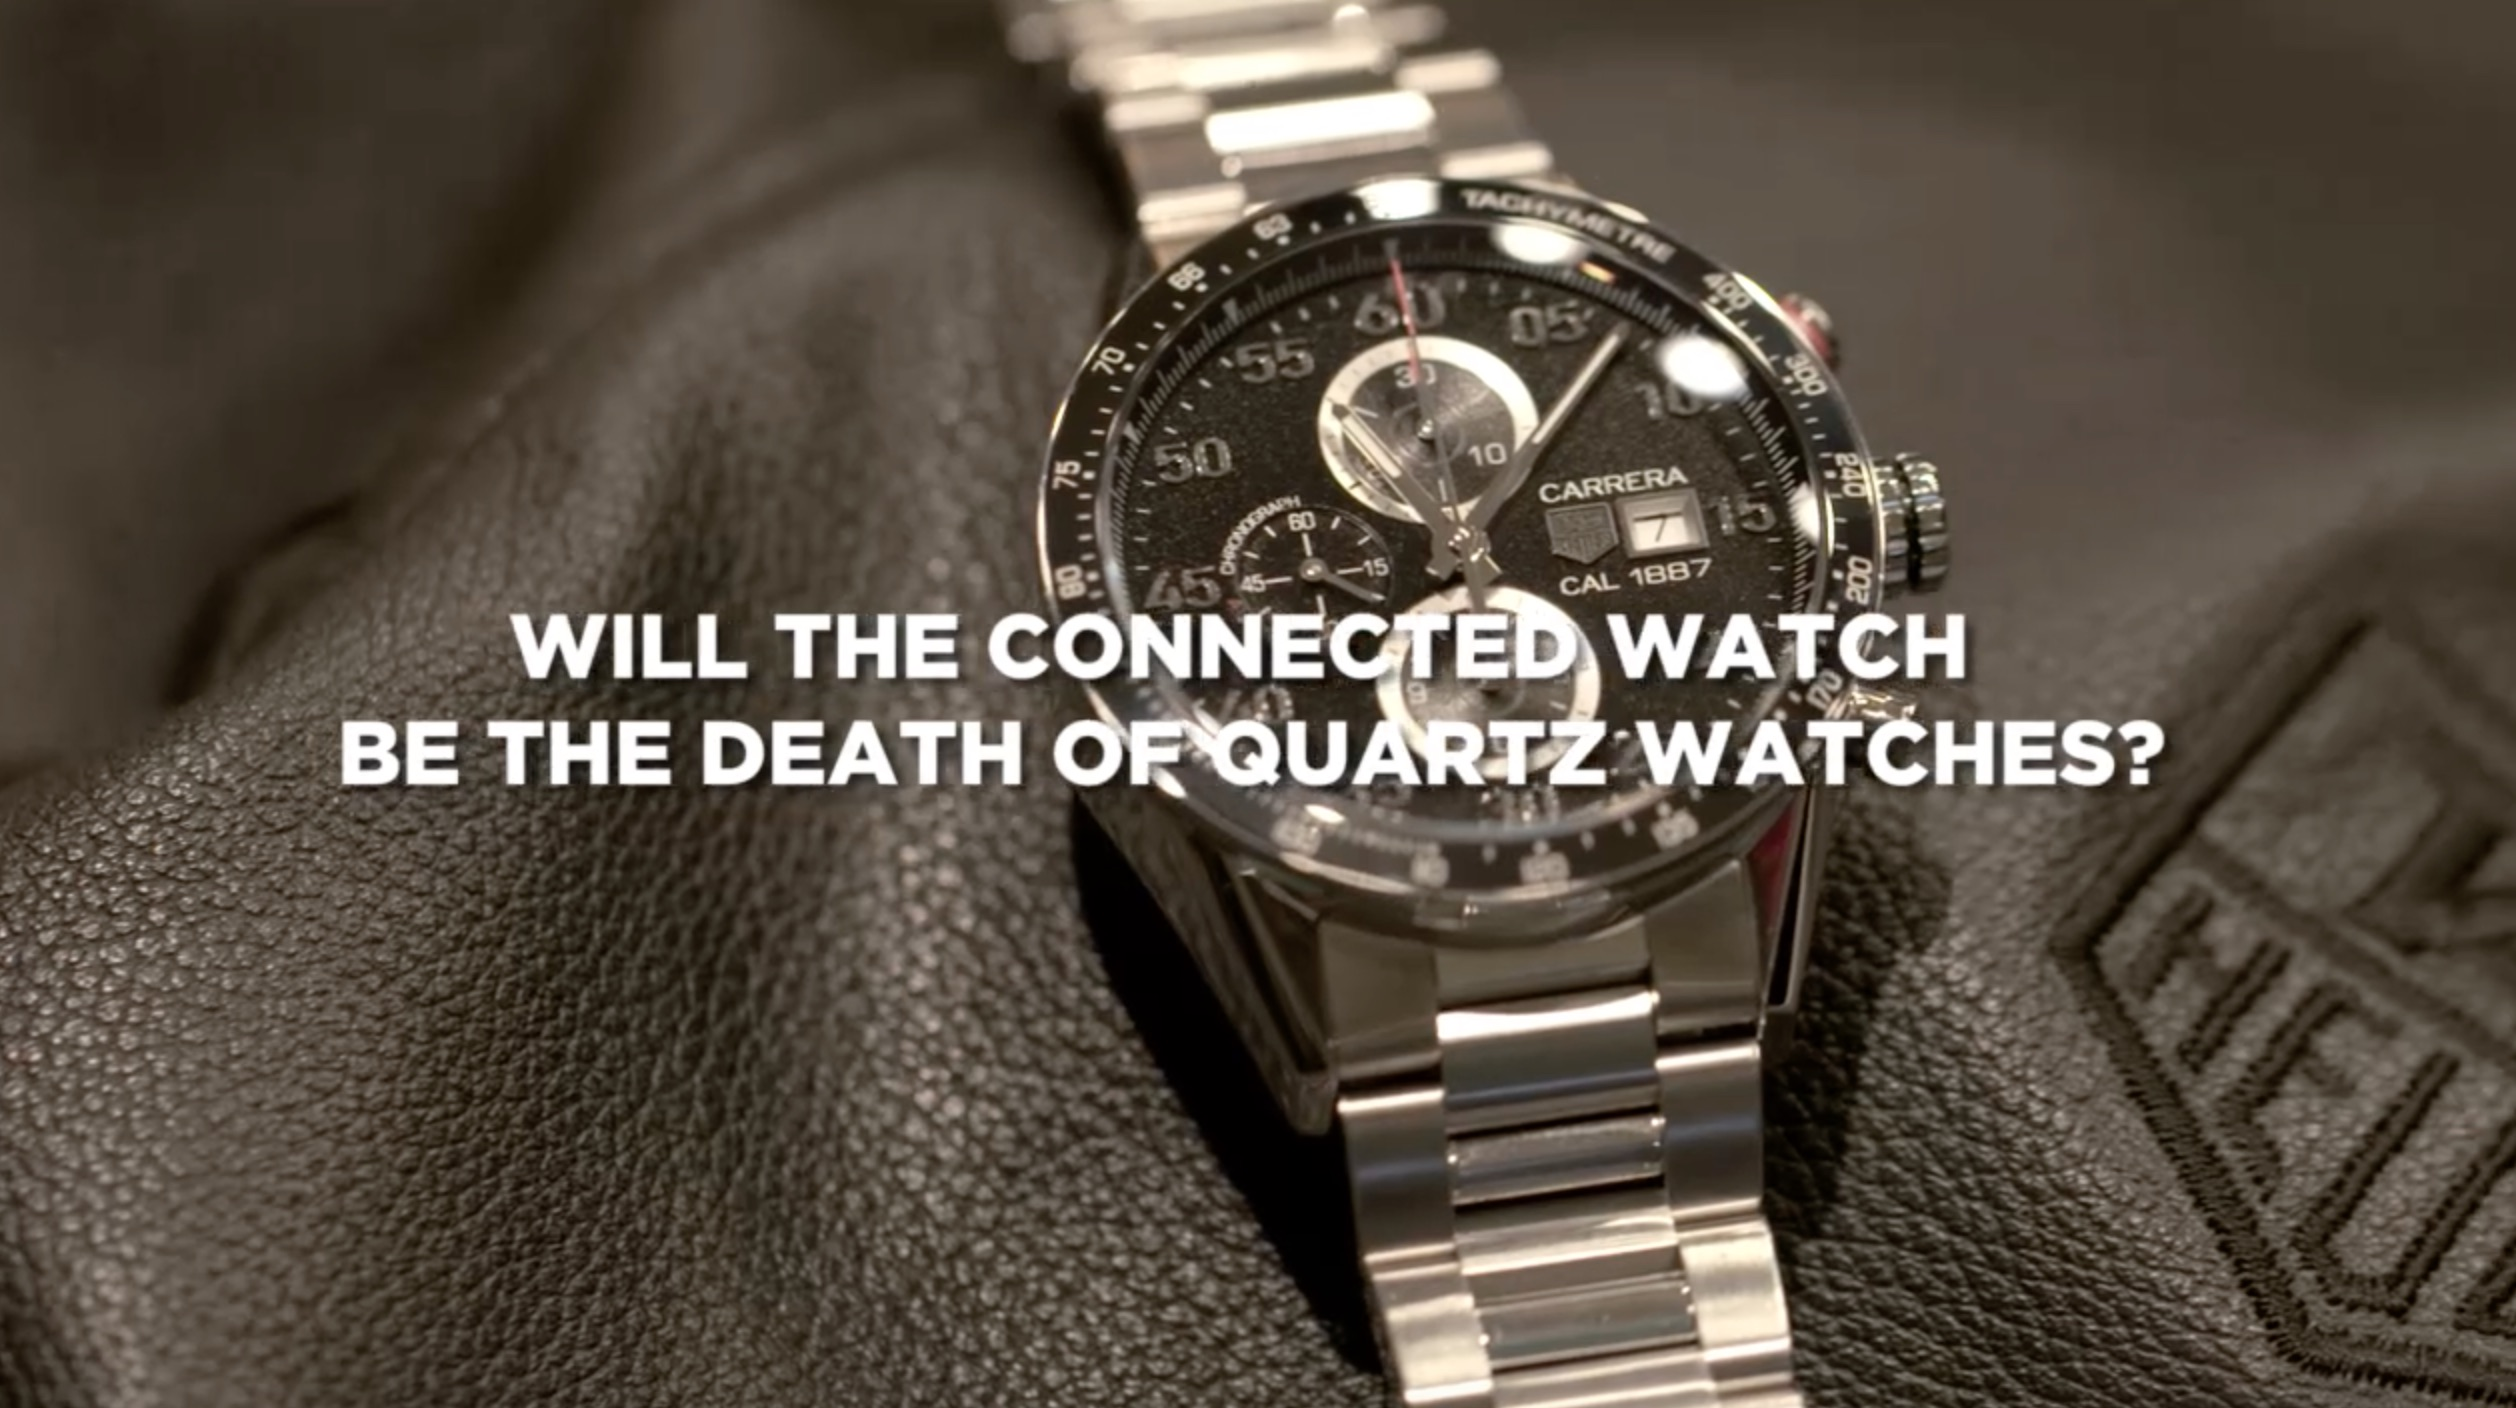 """VIDEO: """"Quartz watches will be destroyed by the tsunami of the connected watch,"""" says TAG Heuer CEO"""